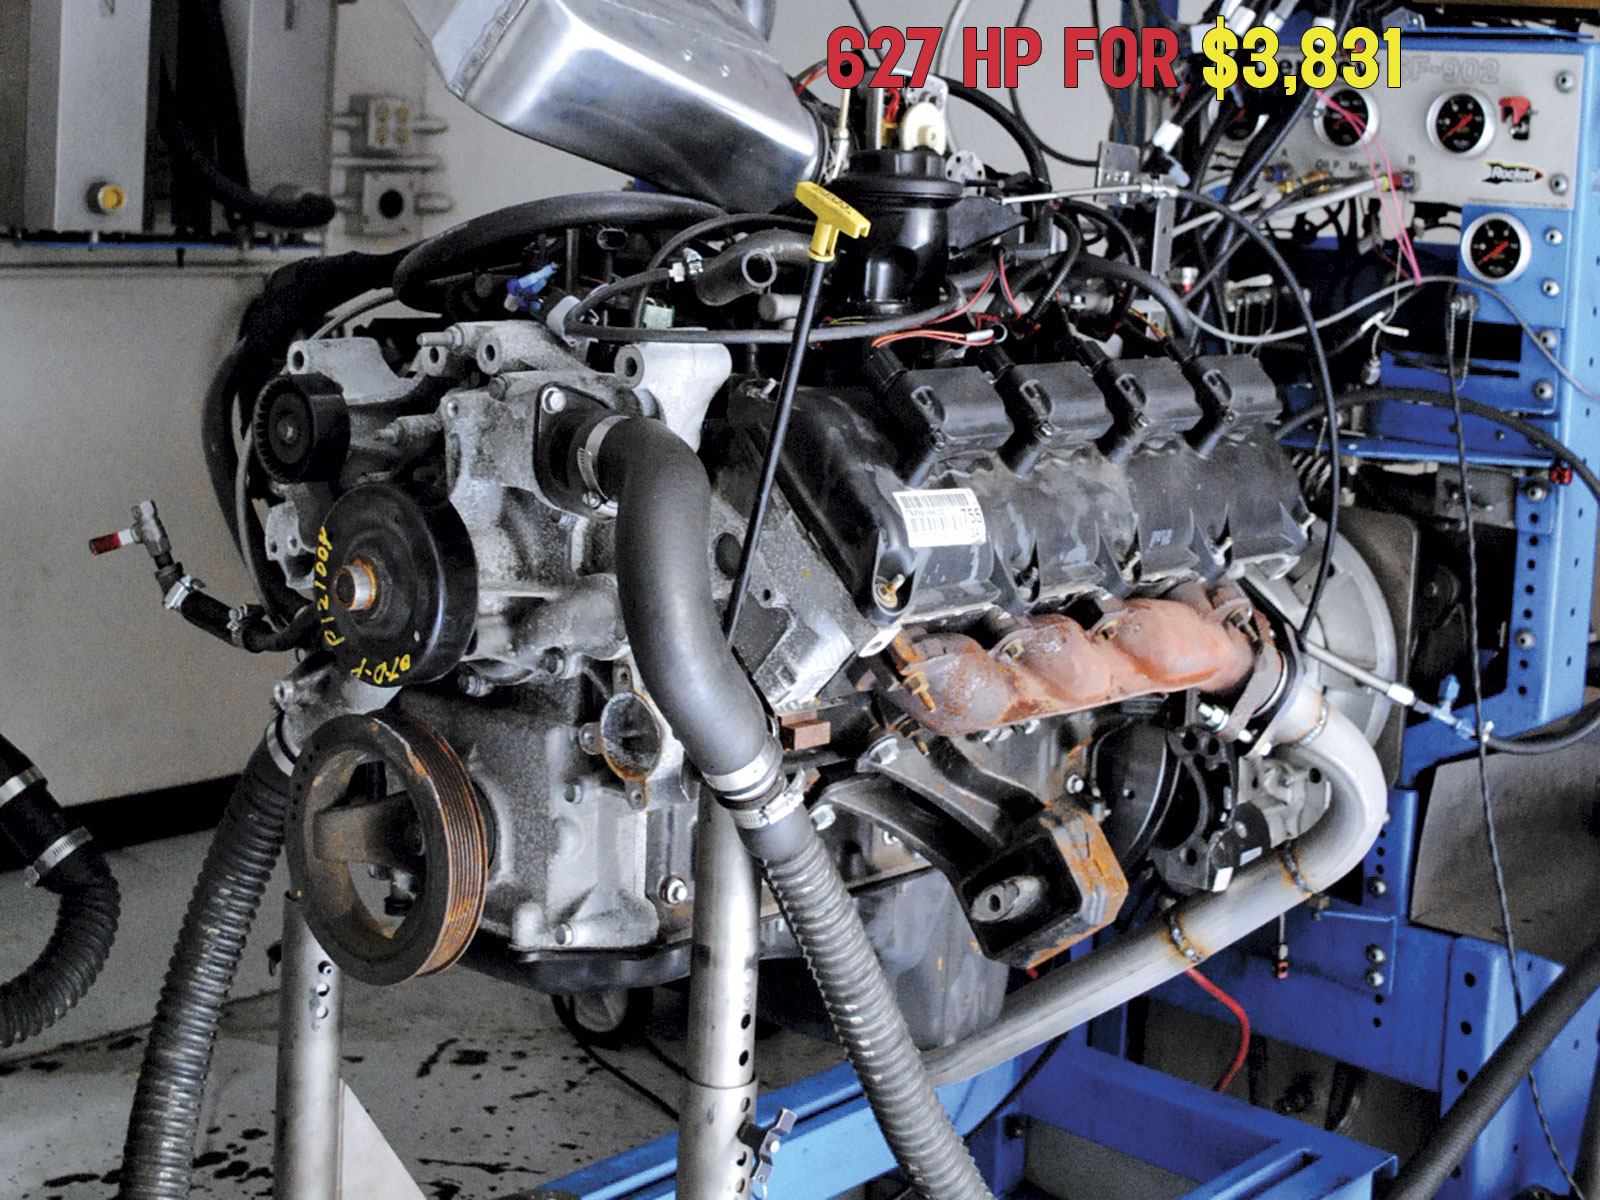 hight resolution of 2006 5 7 hemi engine diagram wiring diagrams scematic 1953 hemi engine 2012 charger 5 7